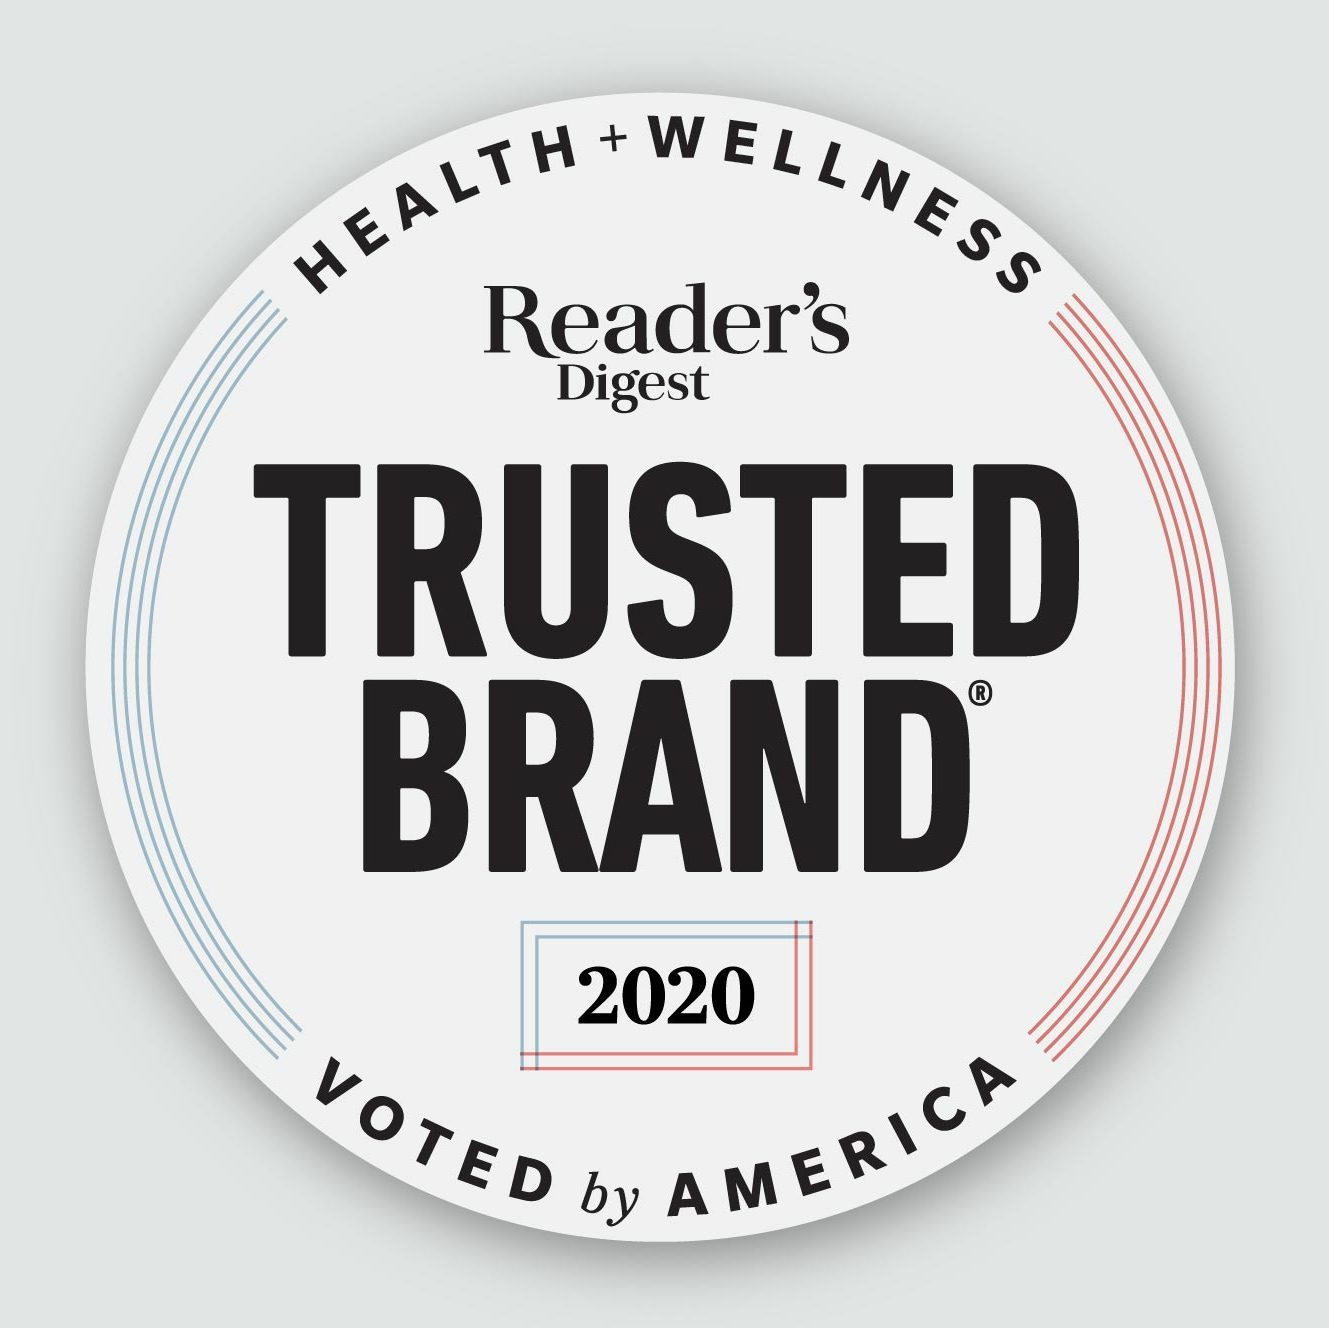 Reader's Digest Trusted Brand logo 2020 on gray background